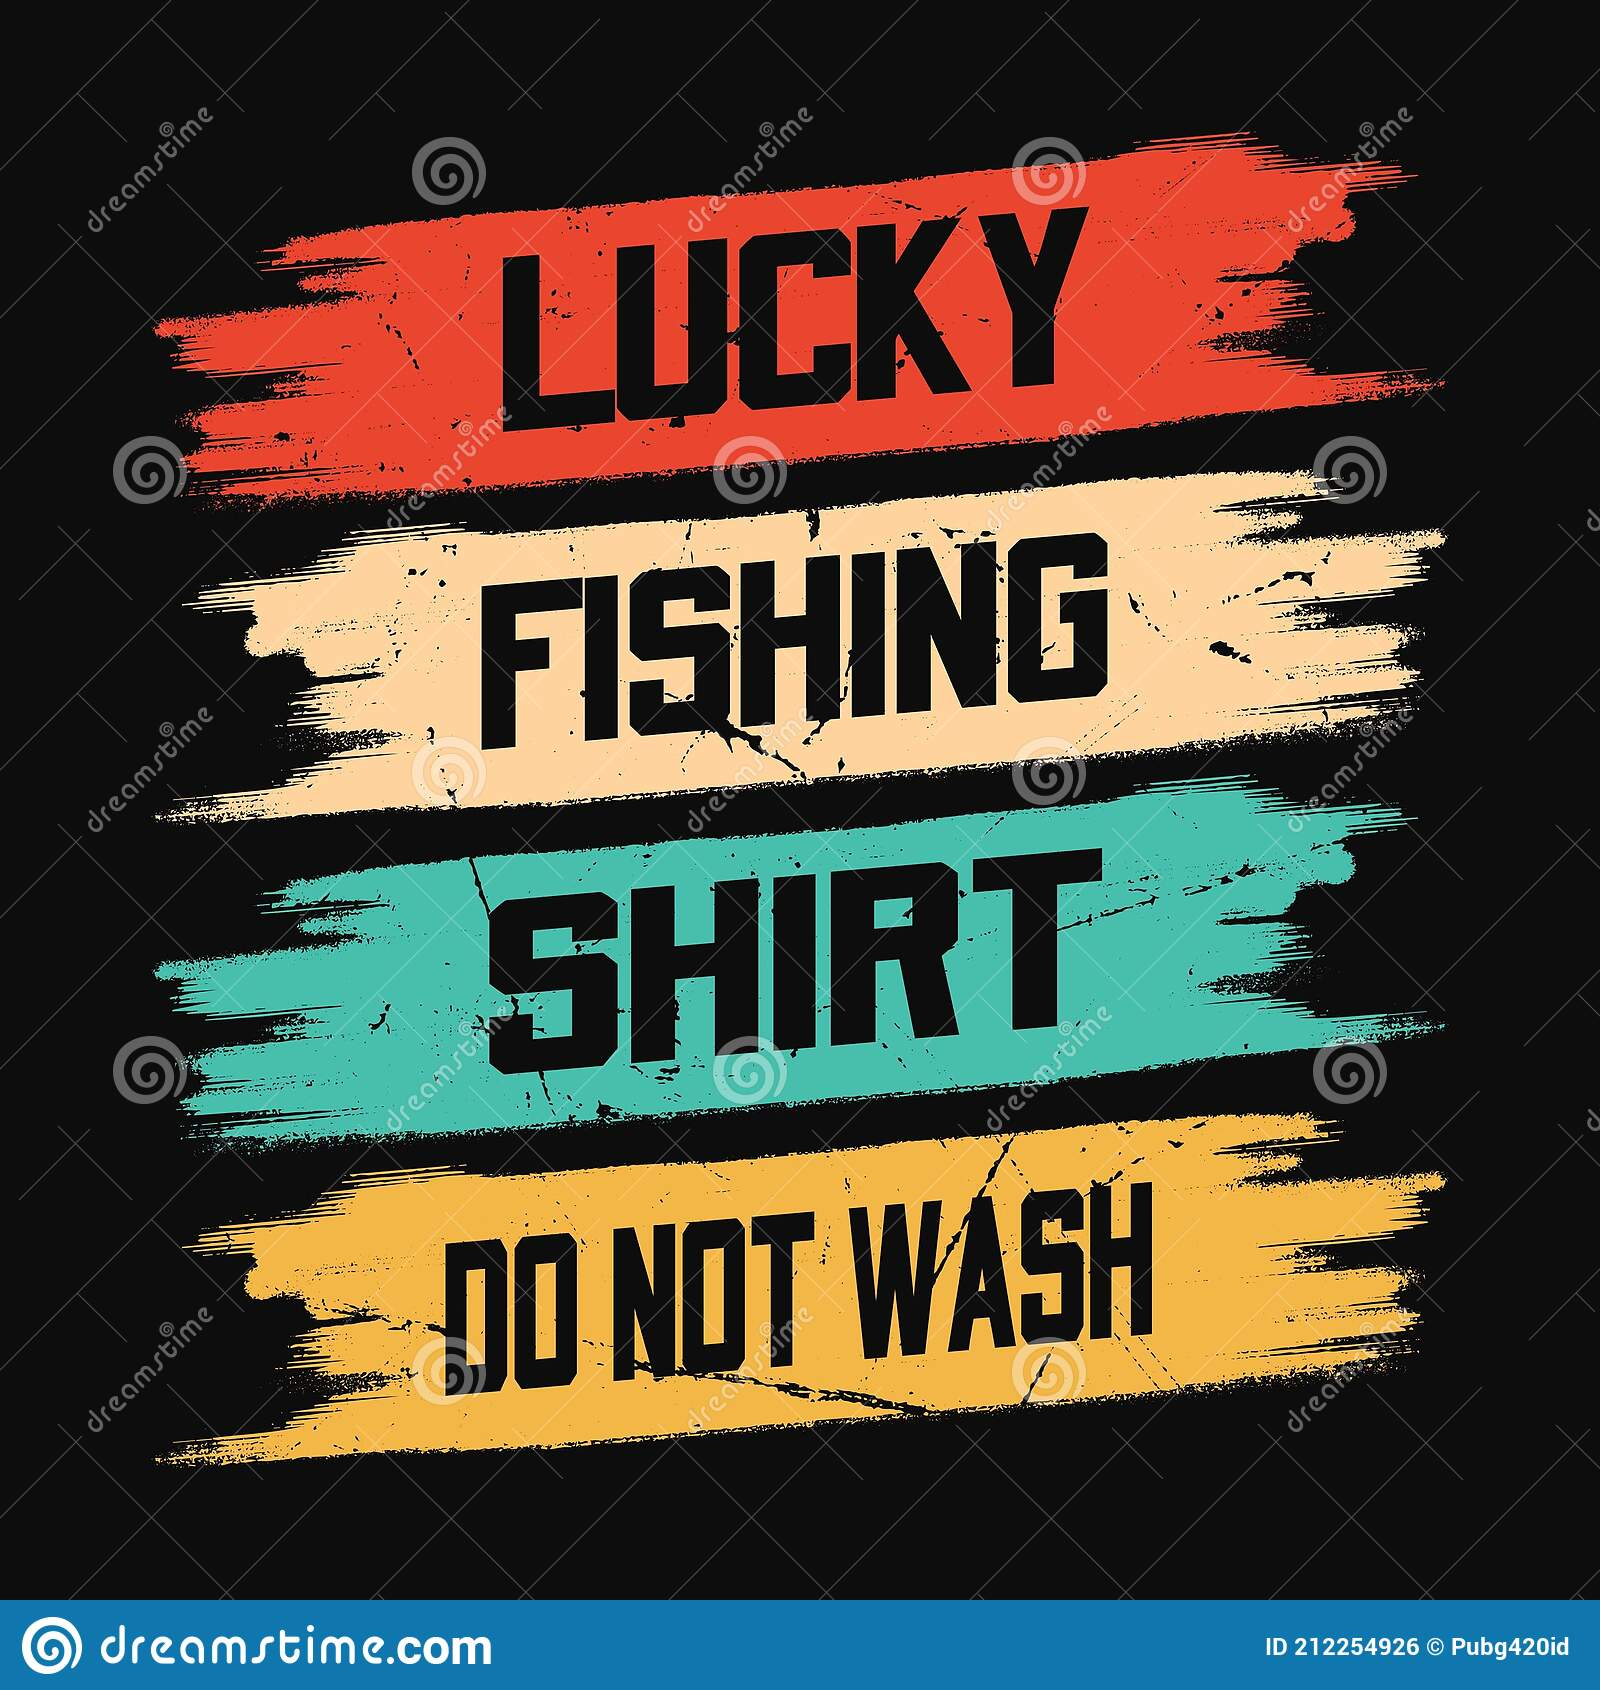 Download Lucky Fishing Stock Illustrations 174 Lucky Fishing Stock Illustrations Vectors Clipart Dreamstime